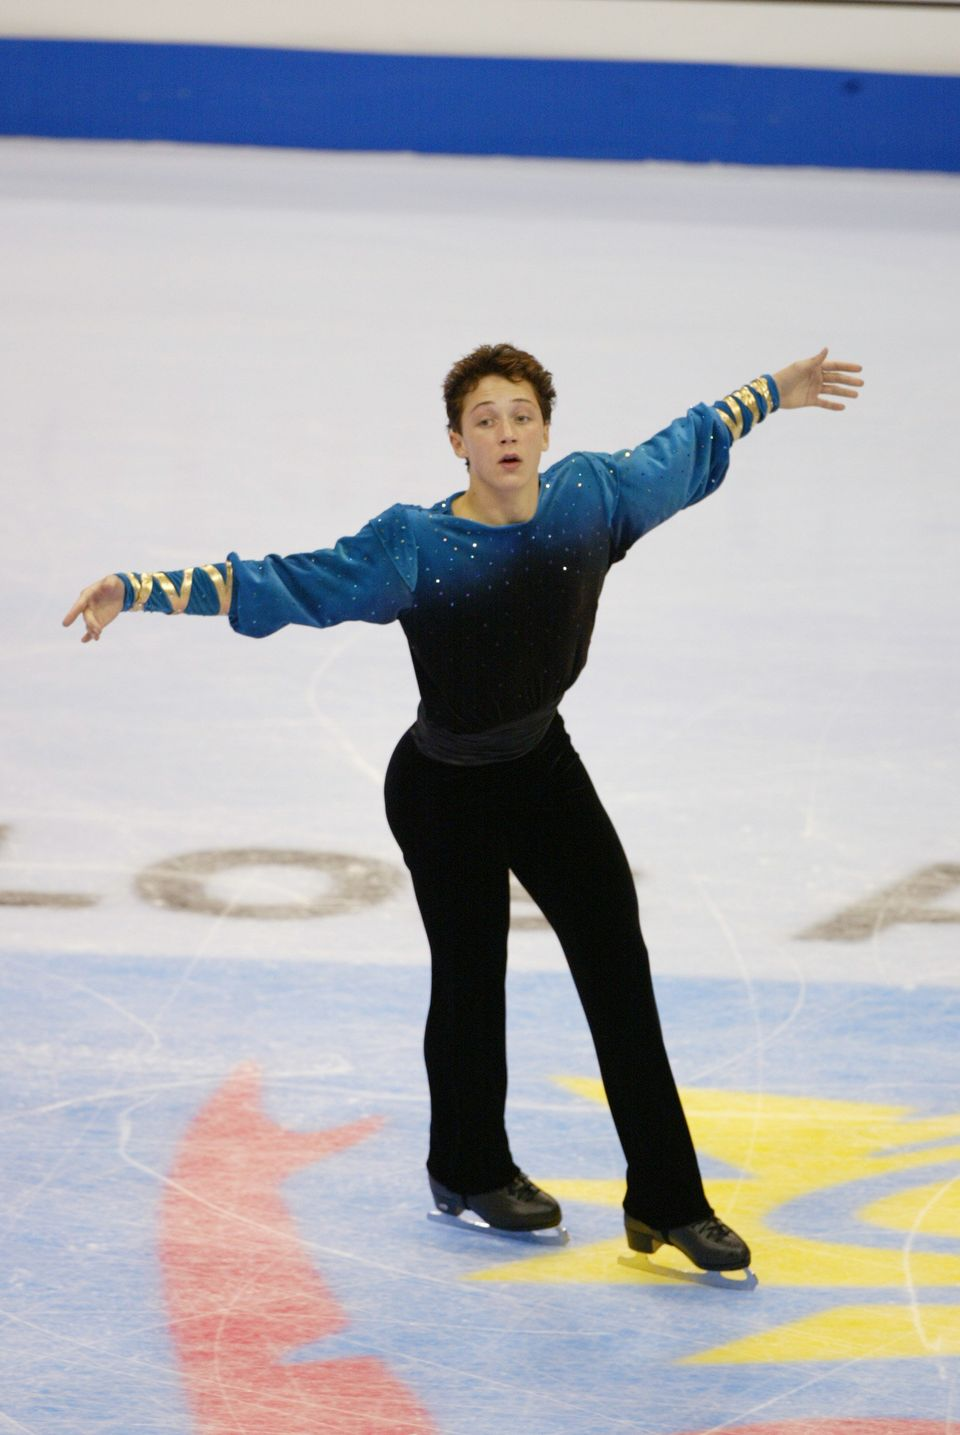 Competing in the men's free program during the State Farm U.S. Figure Skating Championships at the Staples Center in Los Ange